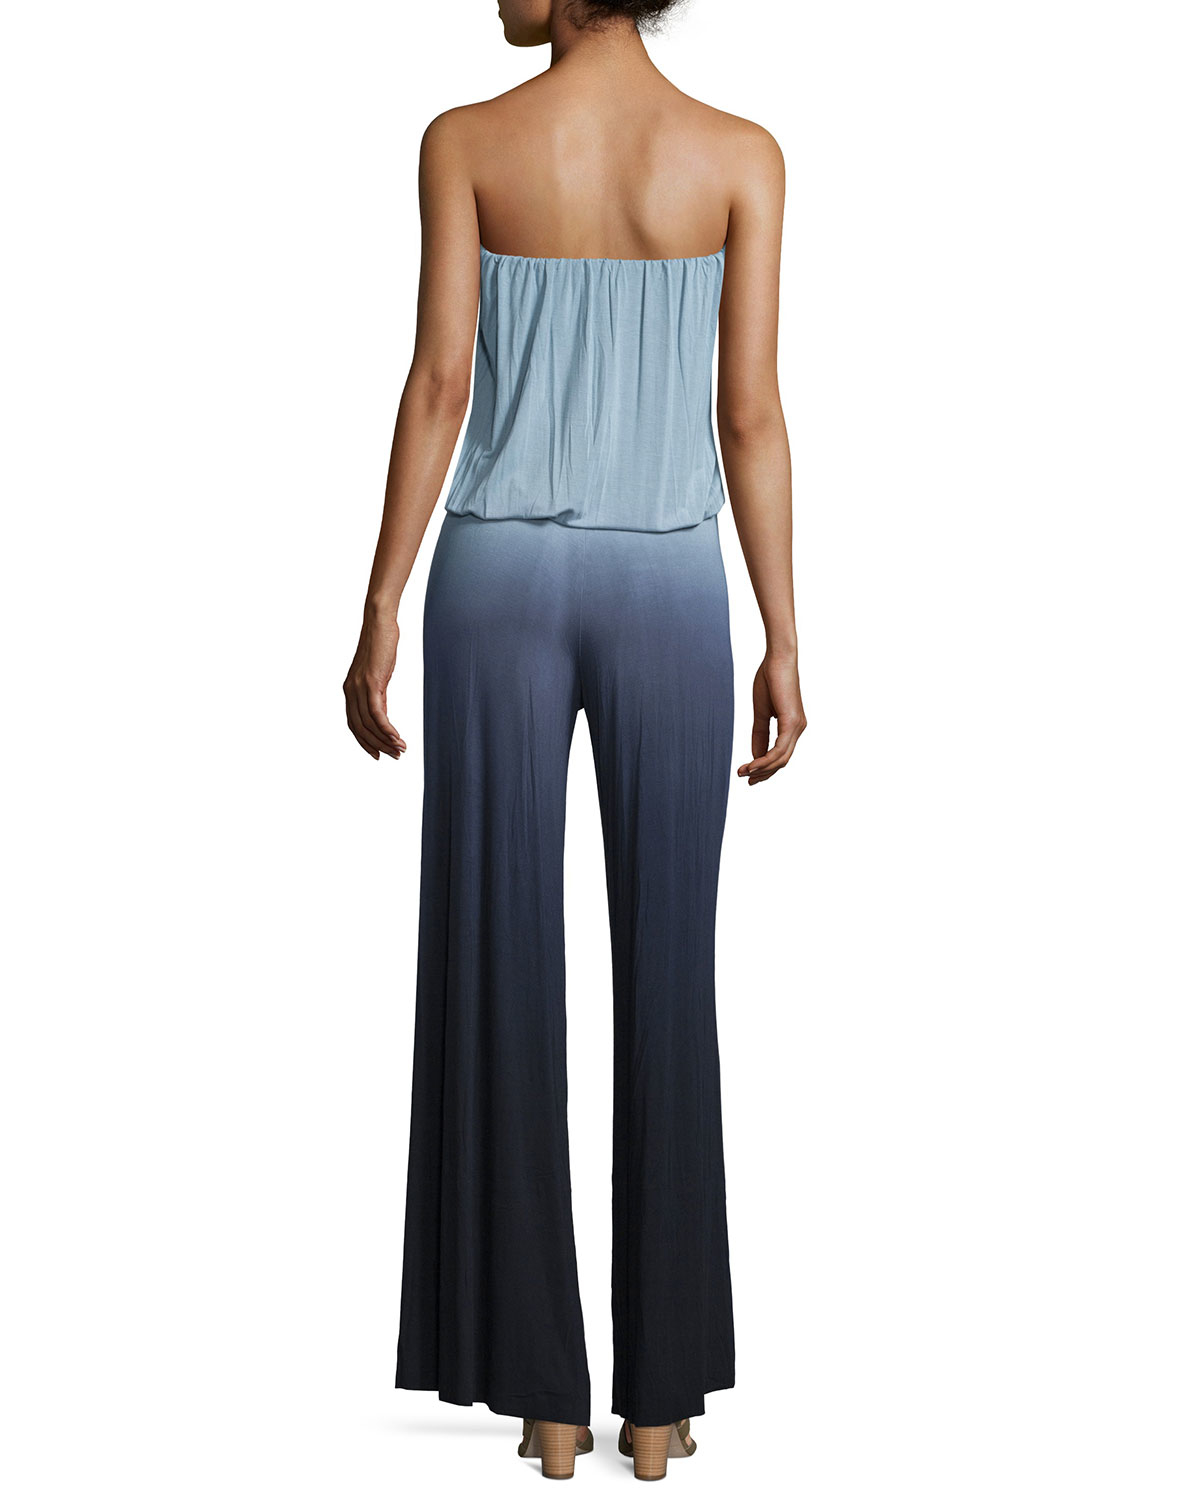 ef0a6077543 Lyst - Young Fabulous   Broke Sydney Strapless Ombre Jumpsuit in Blue